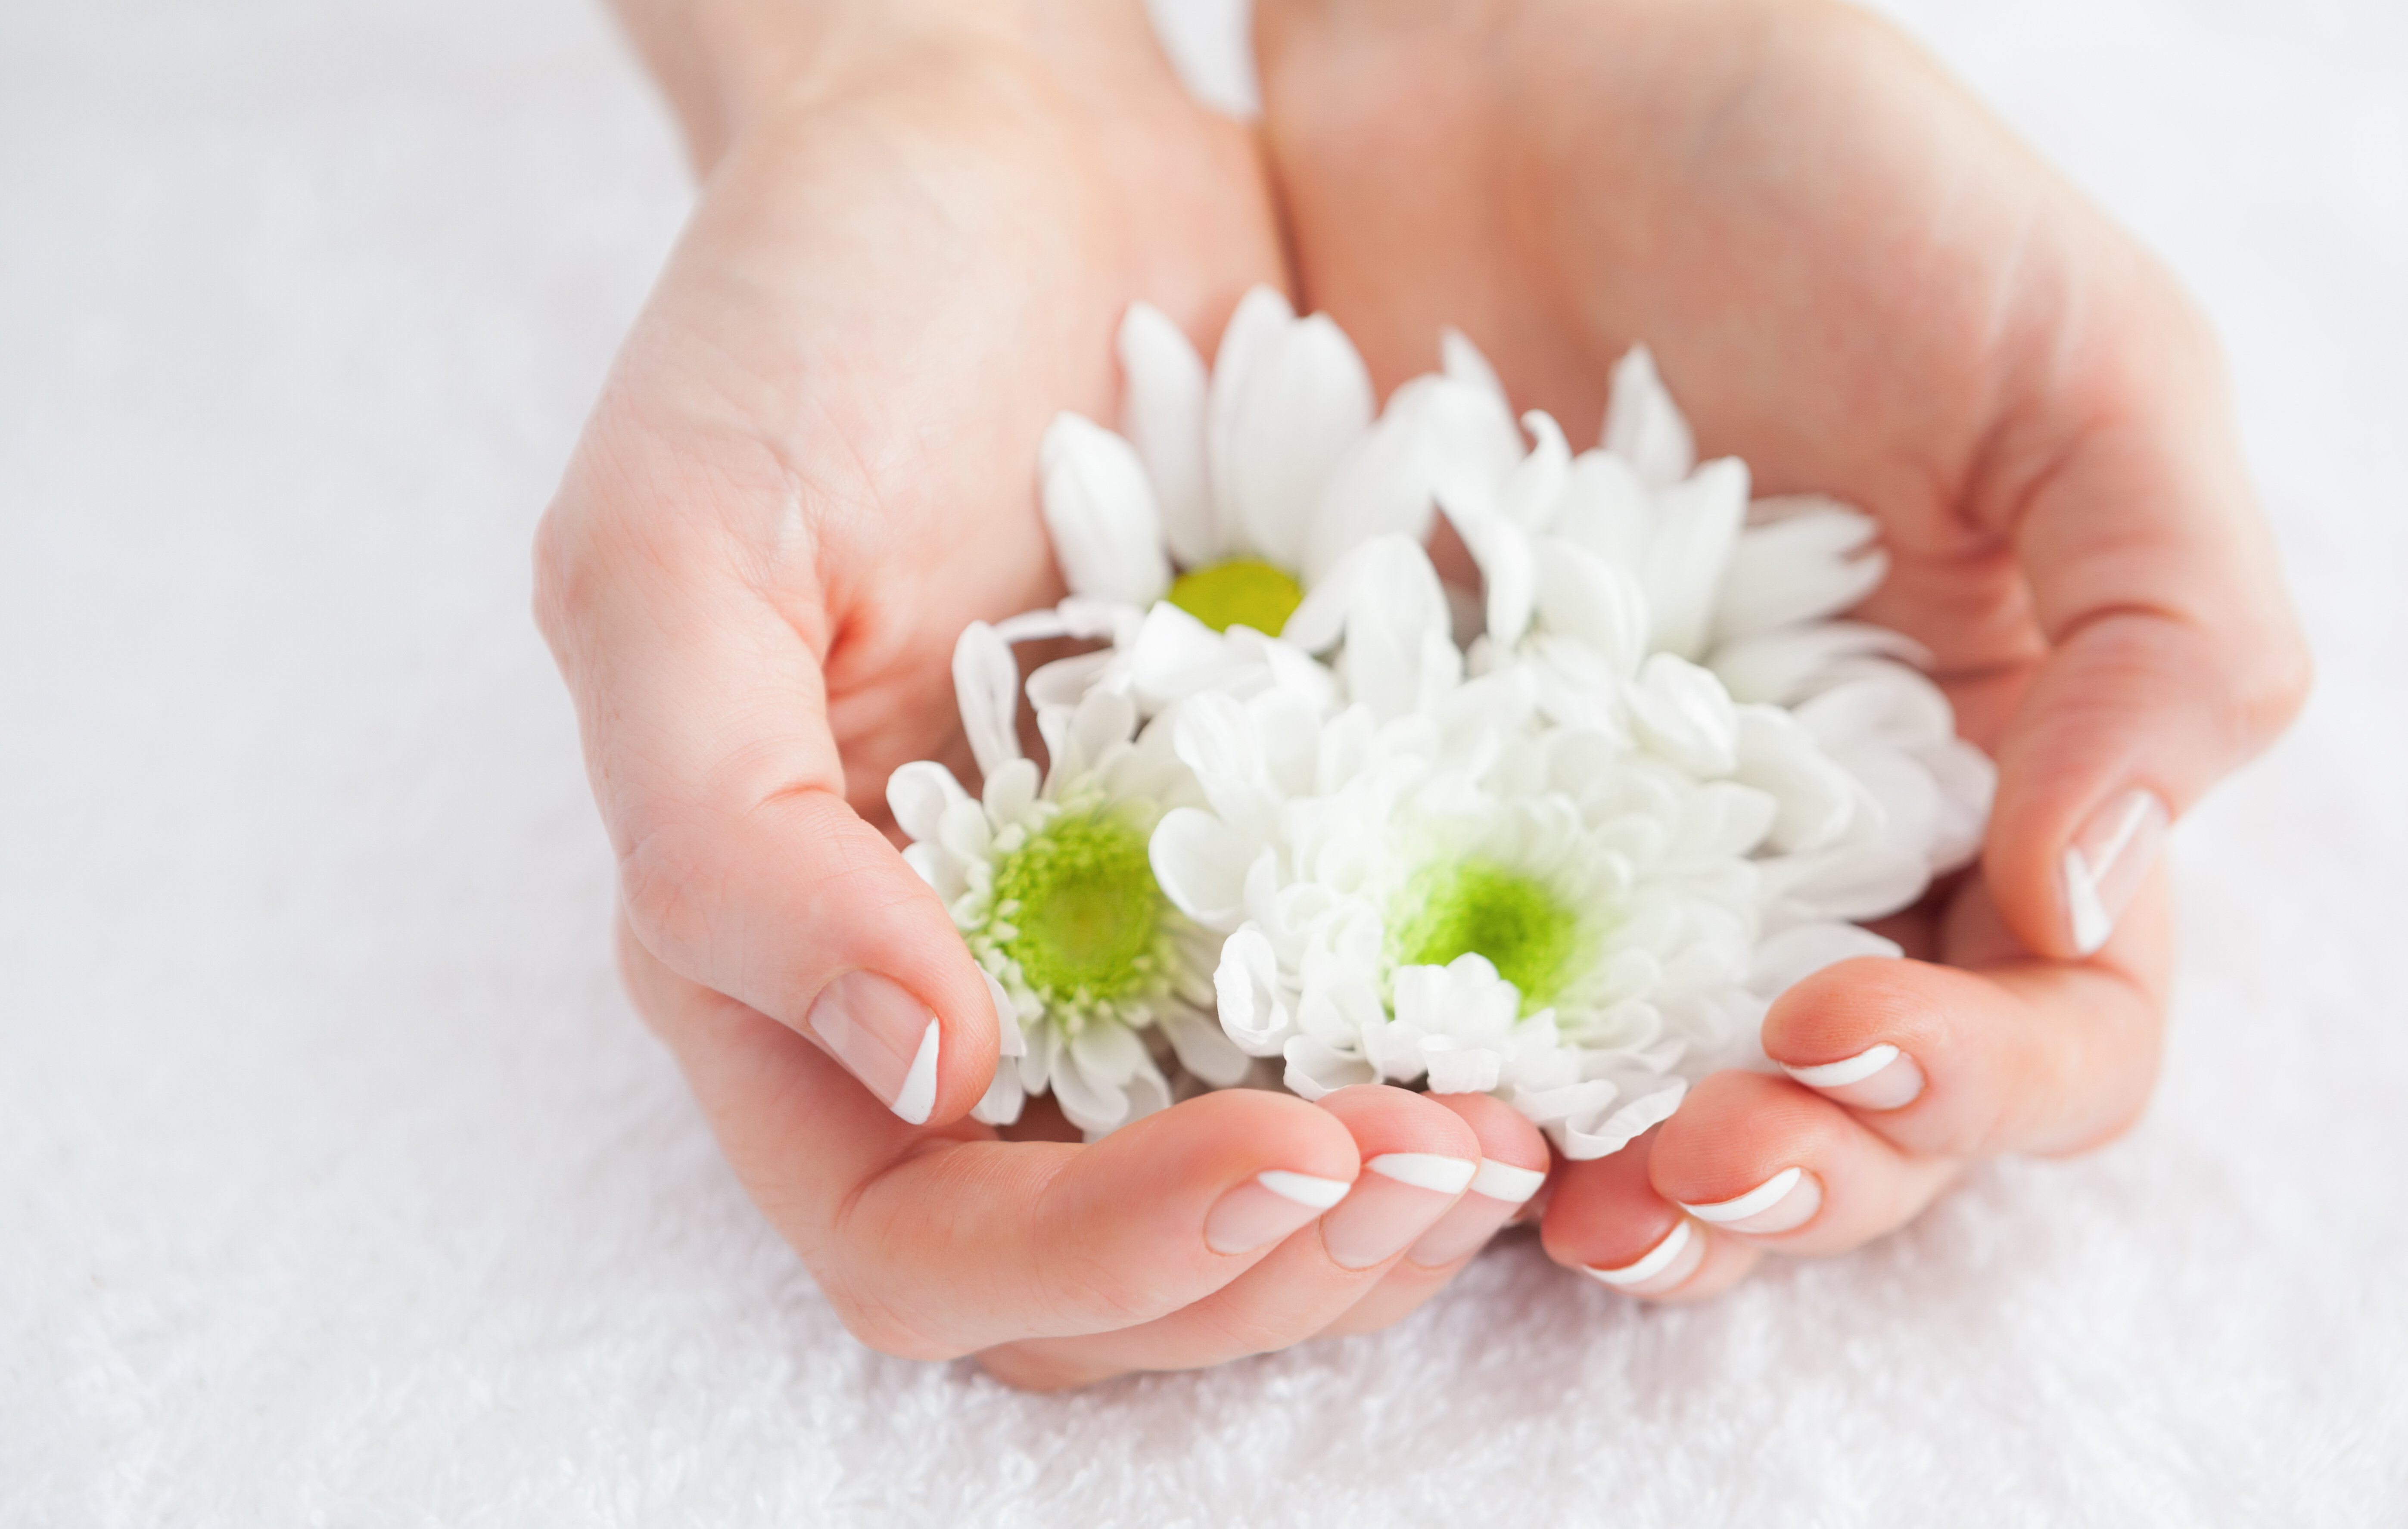 Close-up of french manicured hands holding flowers at spa center-1